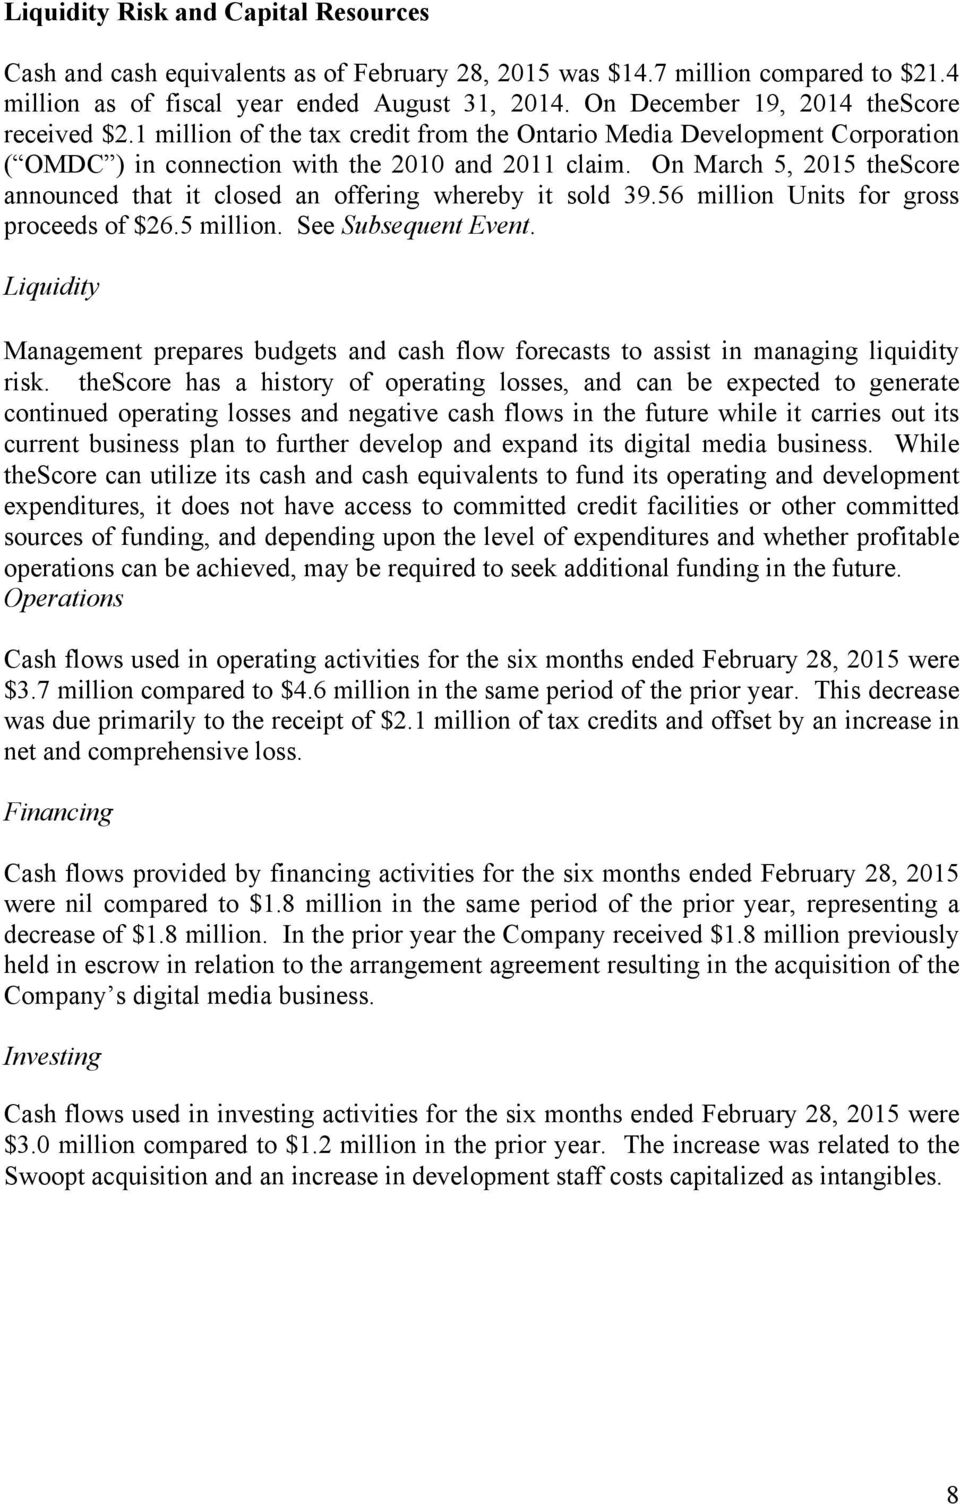 On March 5, 2015 thescore announced that it closed an offering whereby it sold 39.56 million Units for gross proceeds of $26.5 million. See Subsequent Event.